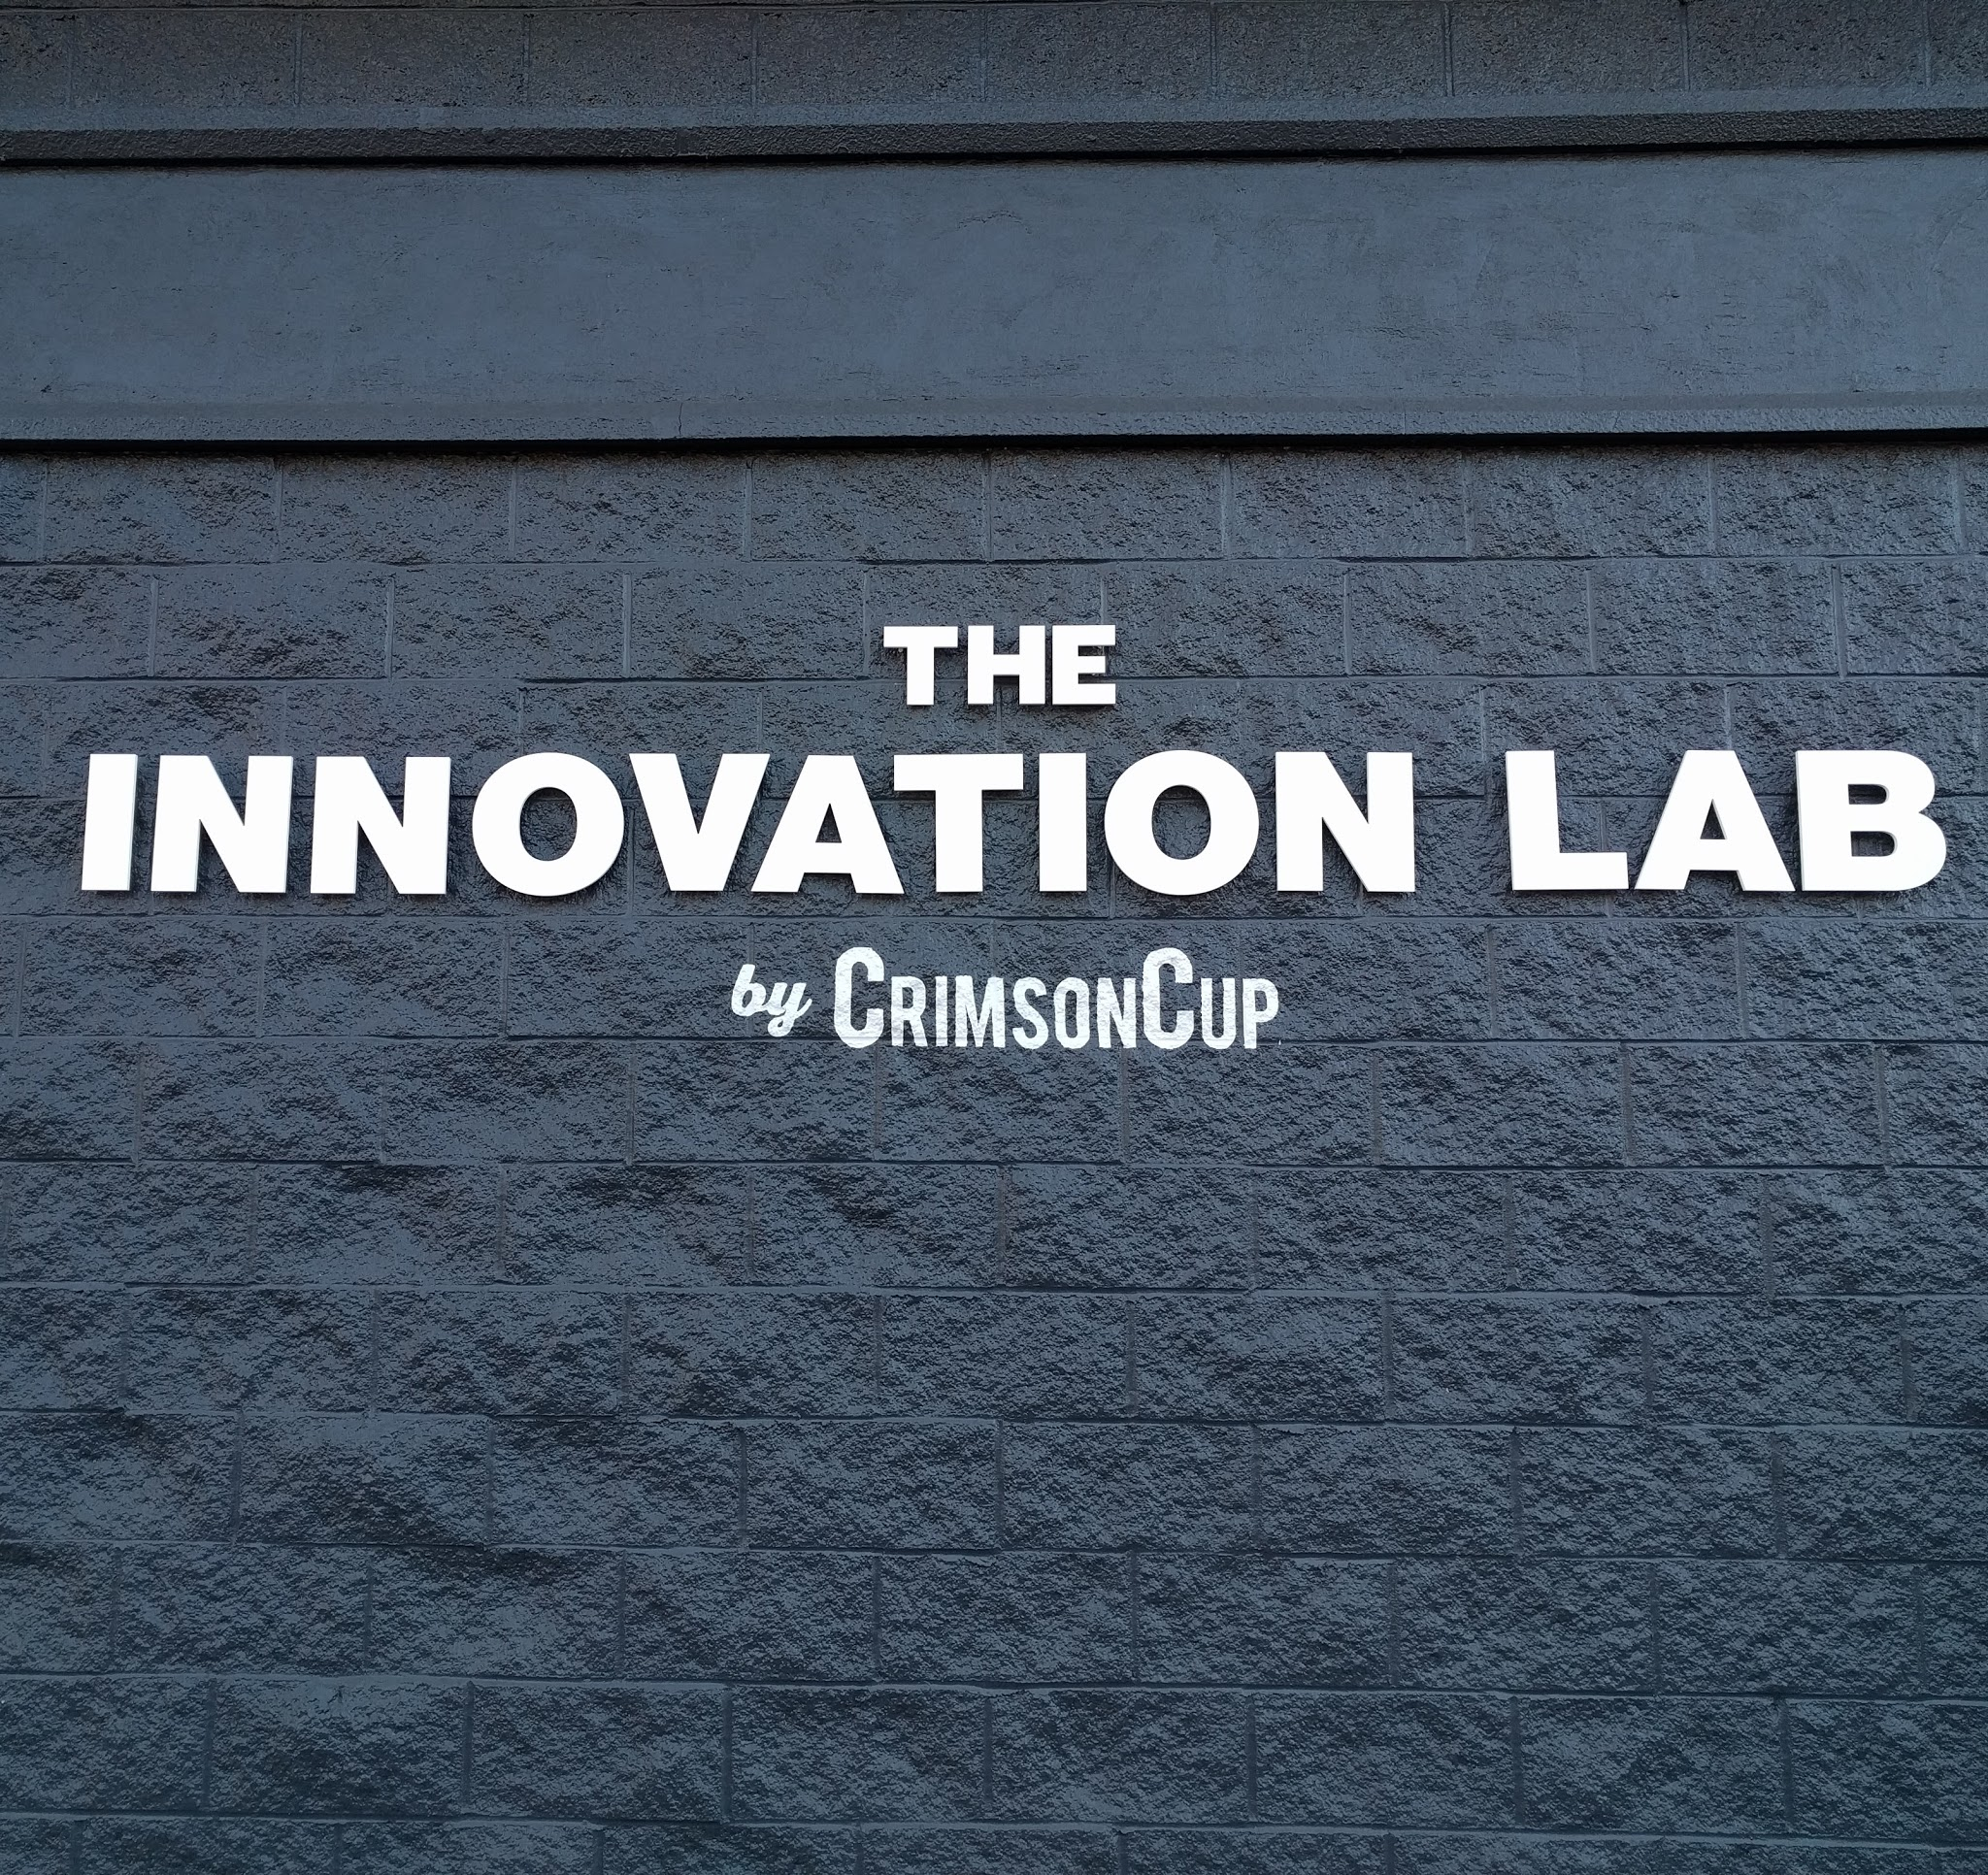 The Innovation Lab by Crimson Cup